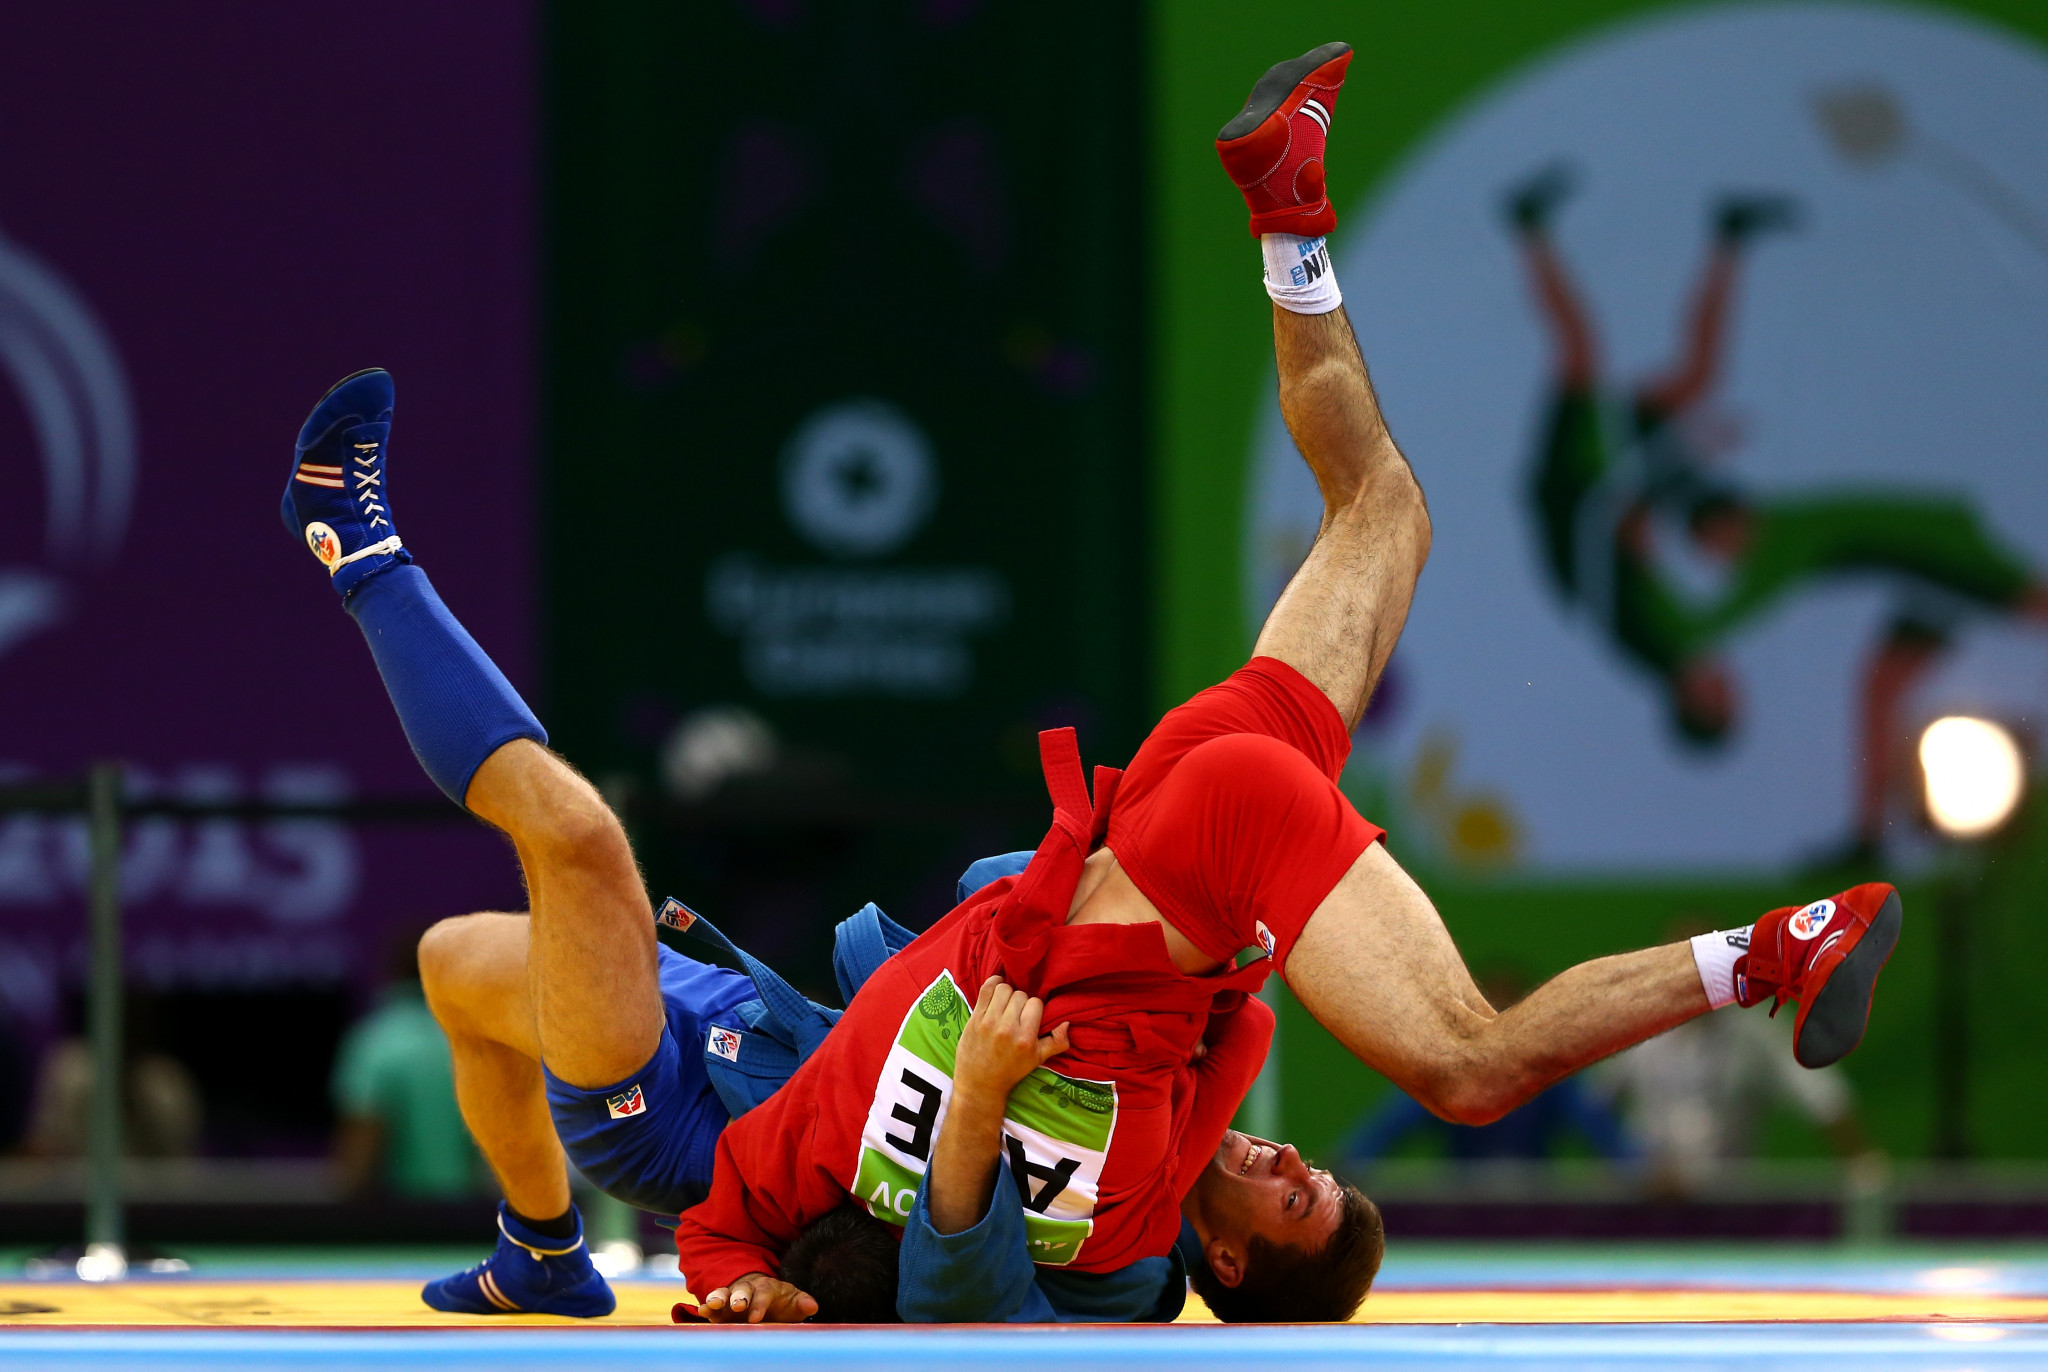 Sambo training and competitions will take place at the new facility ©Getty Images